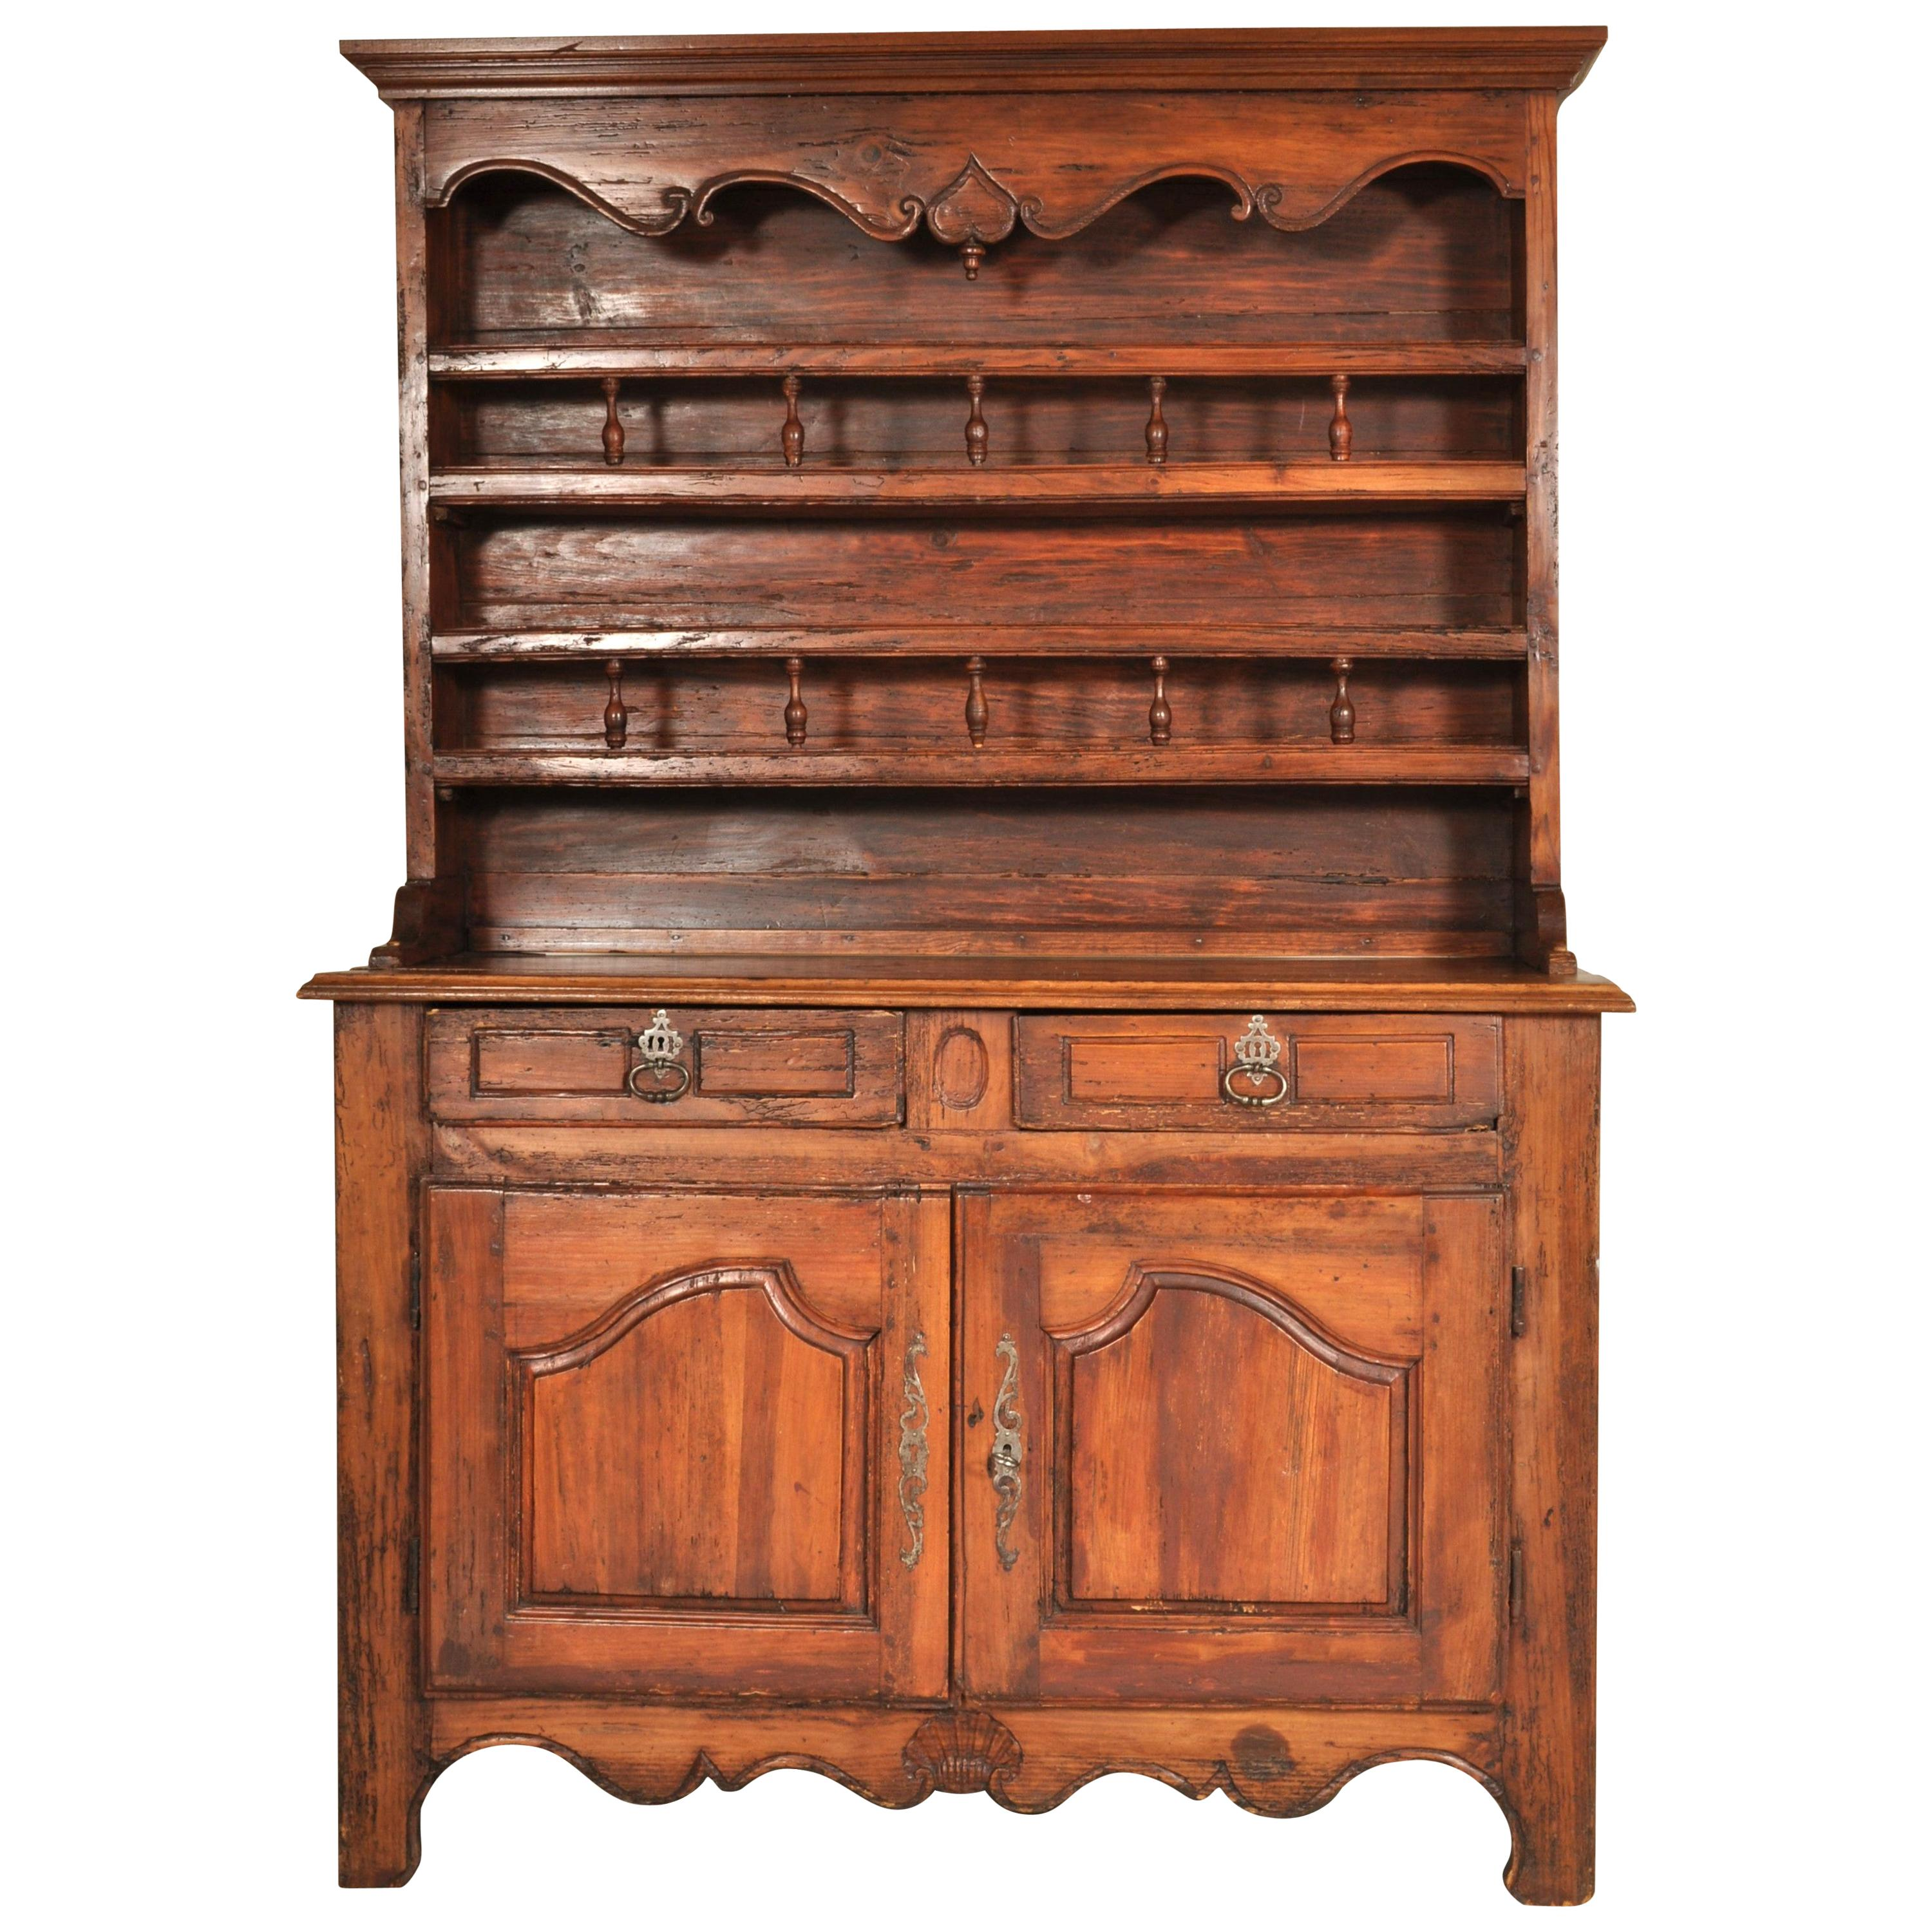 18th Century French Provincial Dresser / Buffet / Sideboard/ Vaisselier